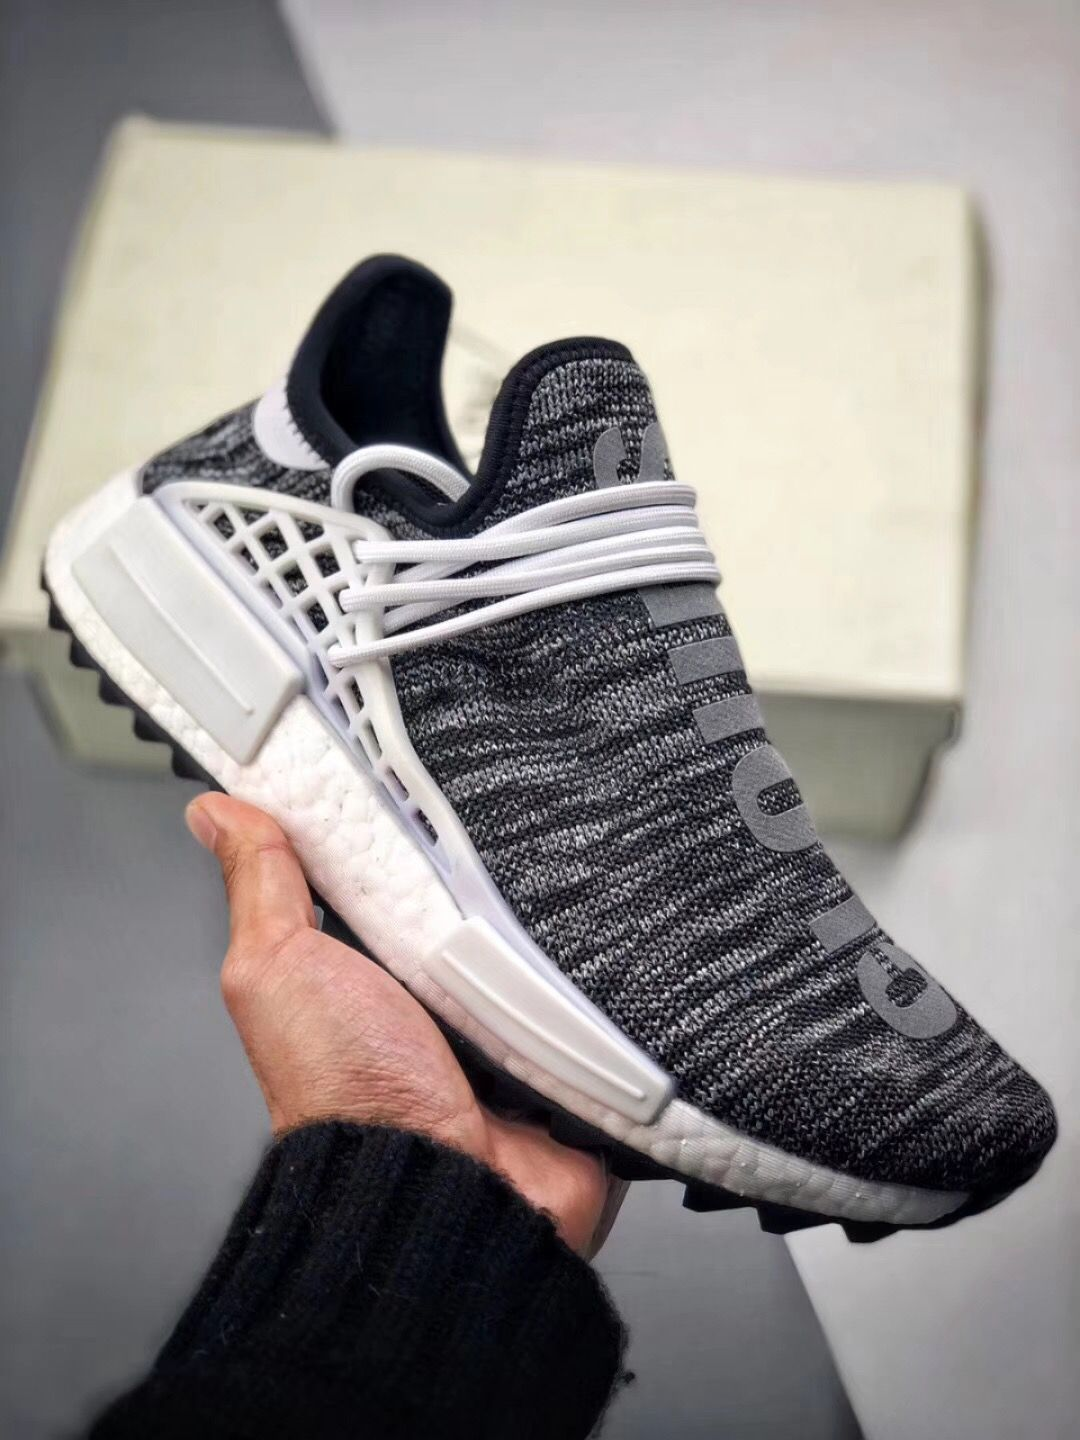 outlet store 7a534 d16b7 2019Adidas EQT ZX BOOST G26778 ADIDAS t Adidas